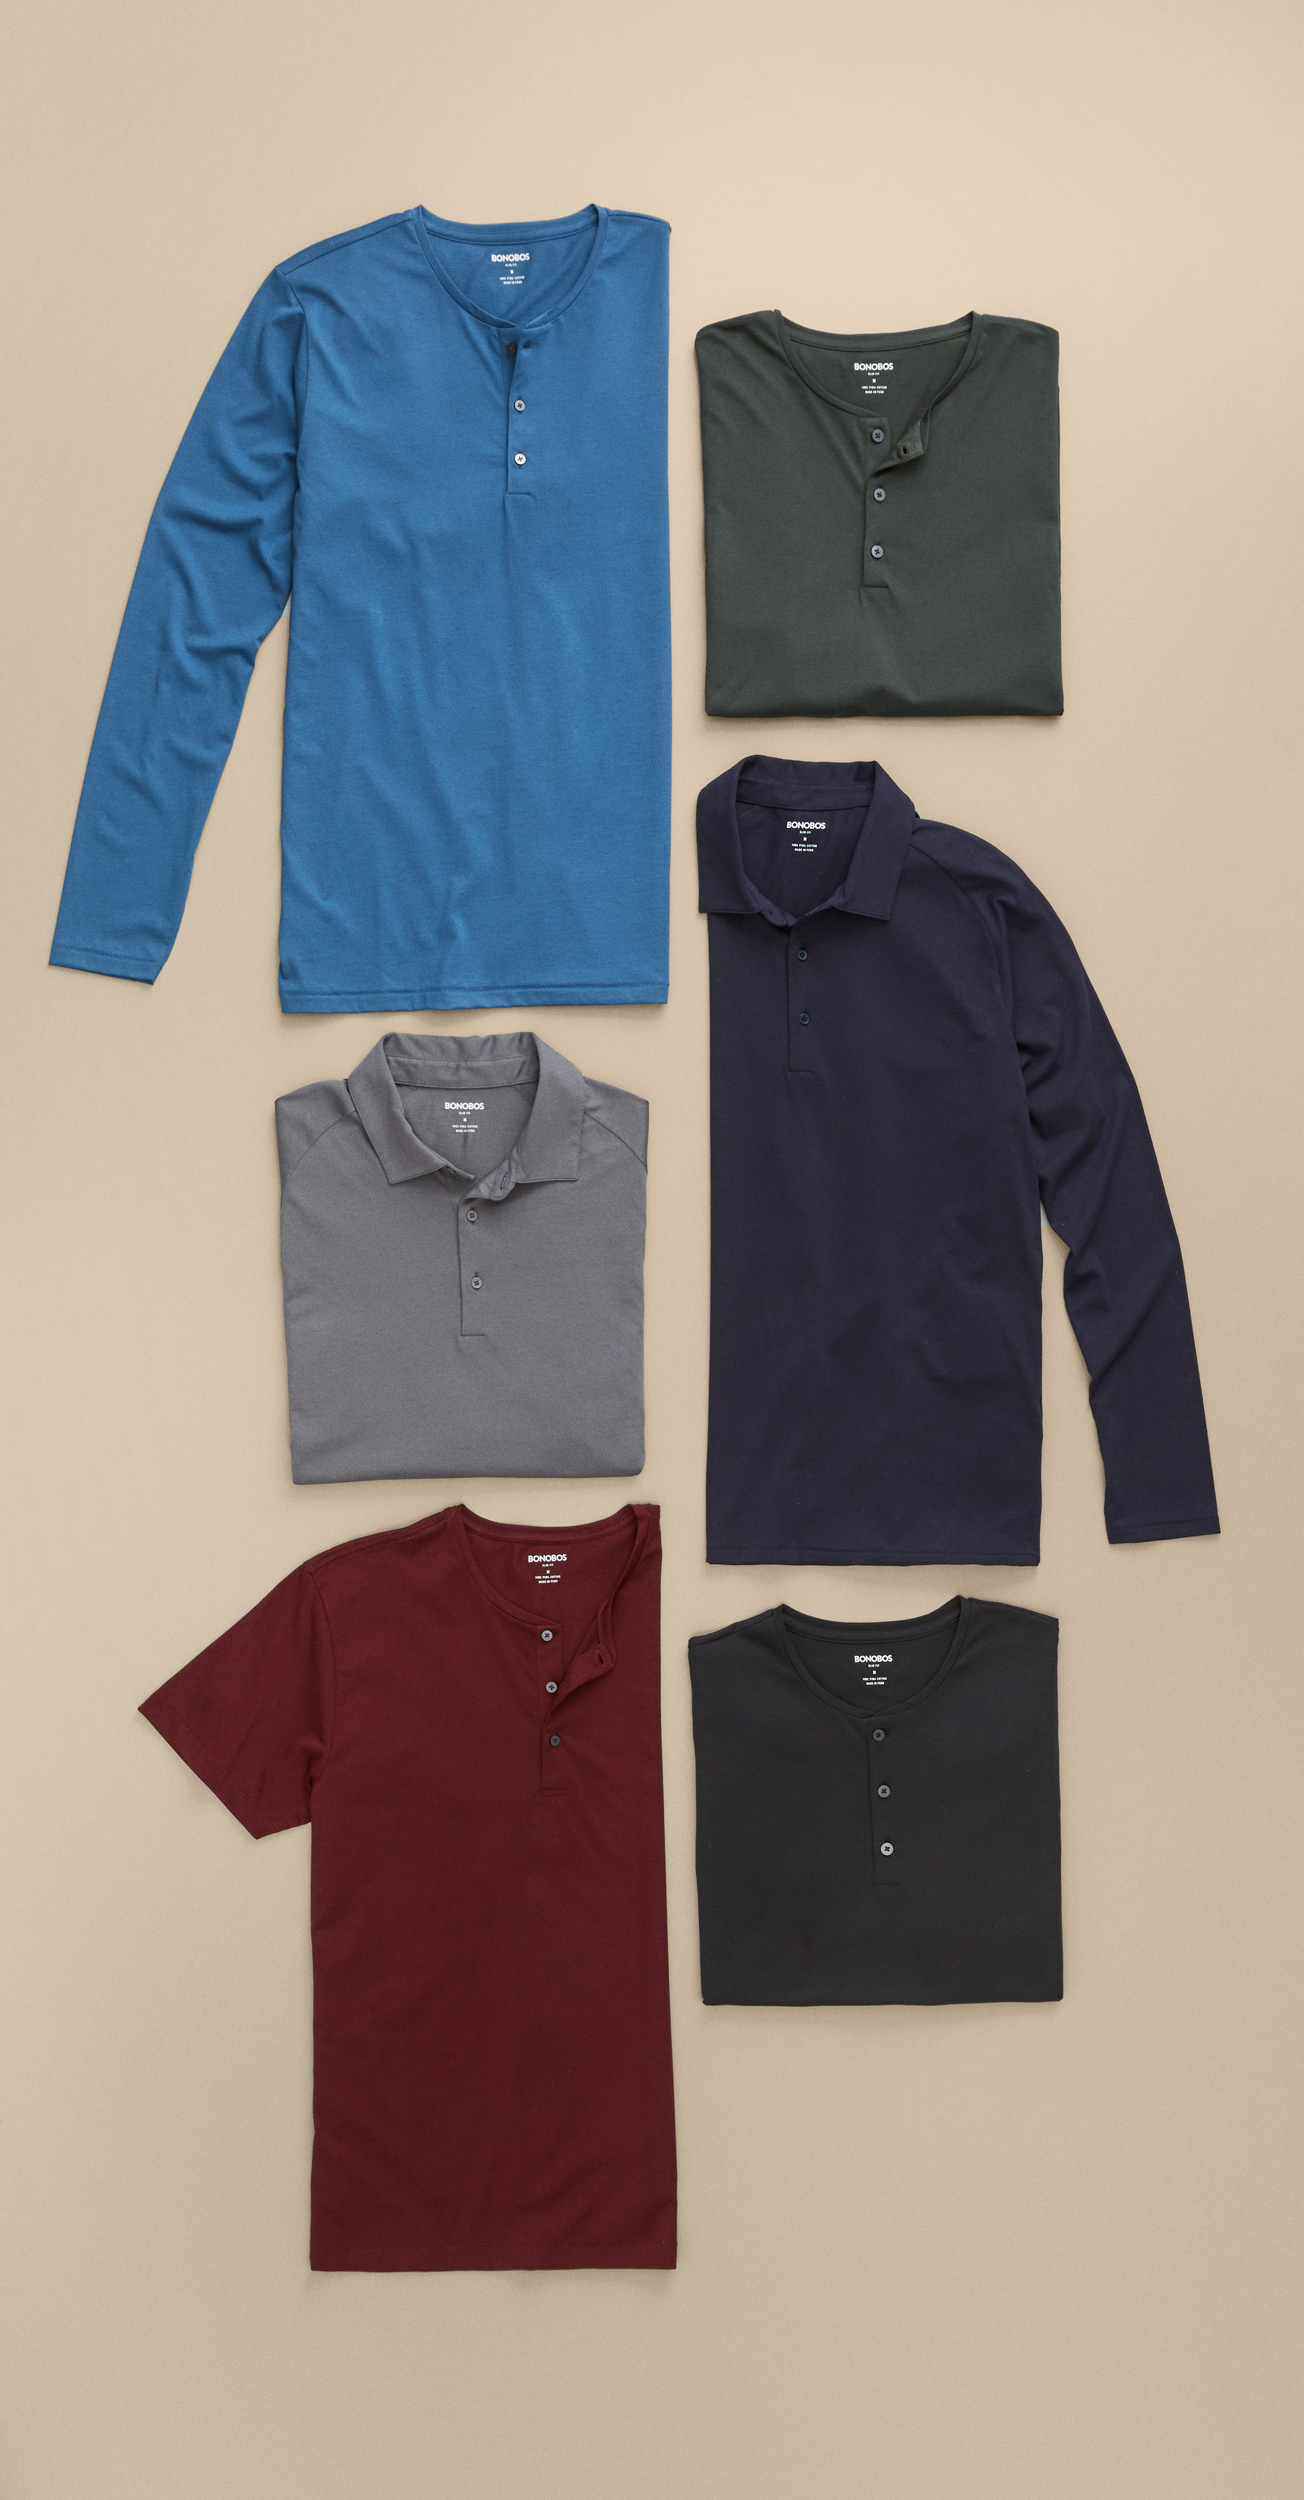 Superfine_Polo_and_Henley_038_v2.jpg